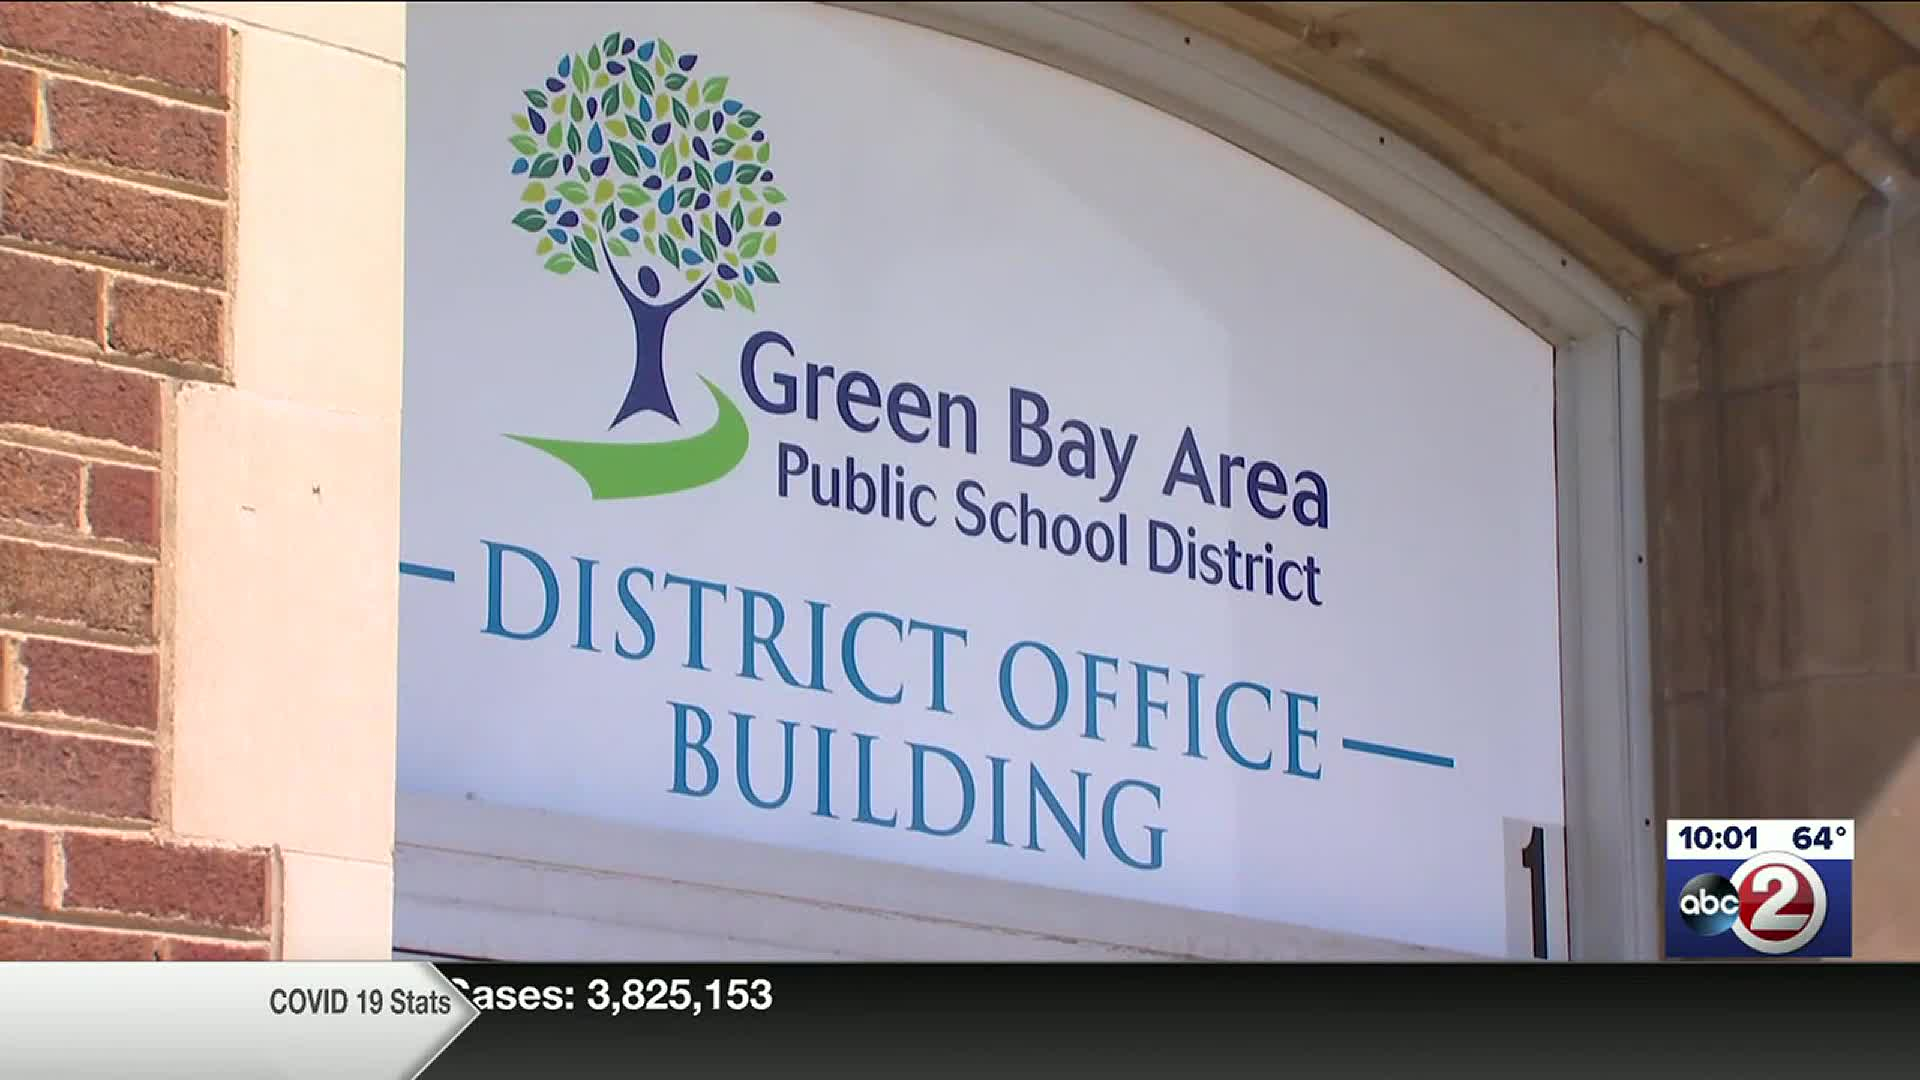 Green Bay Area Public School District To Have Reopening Plan For Green Bay School District 2020 Calander